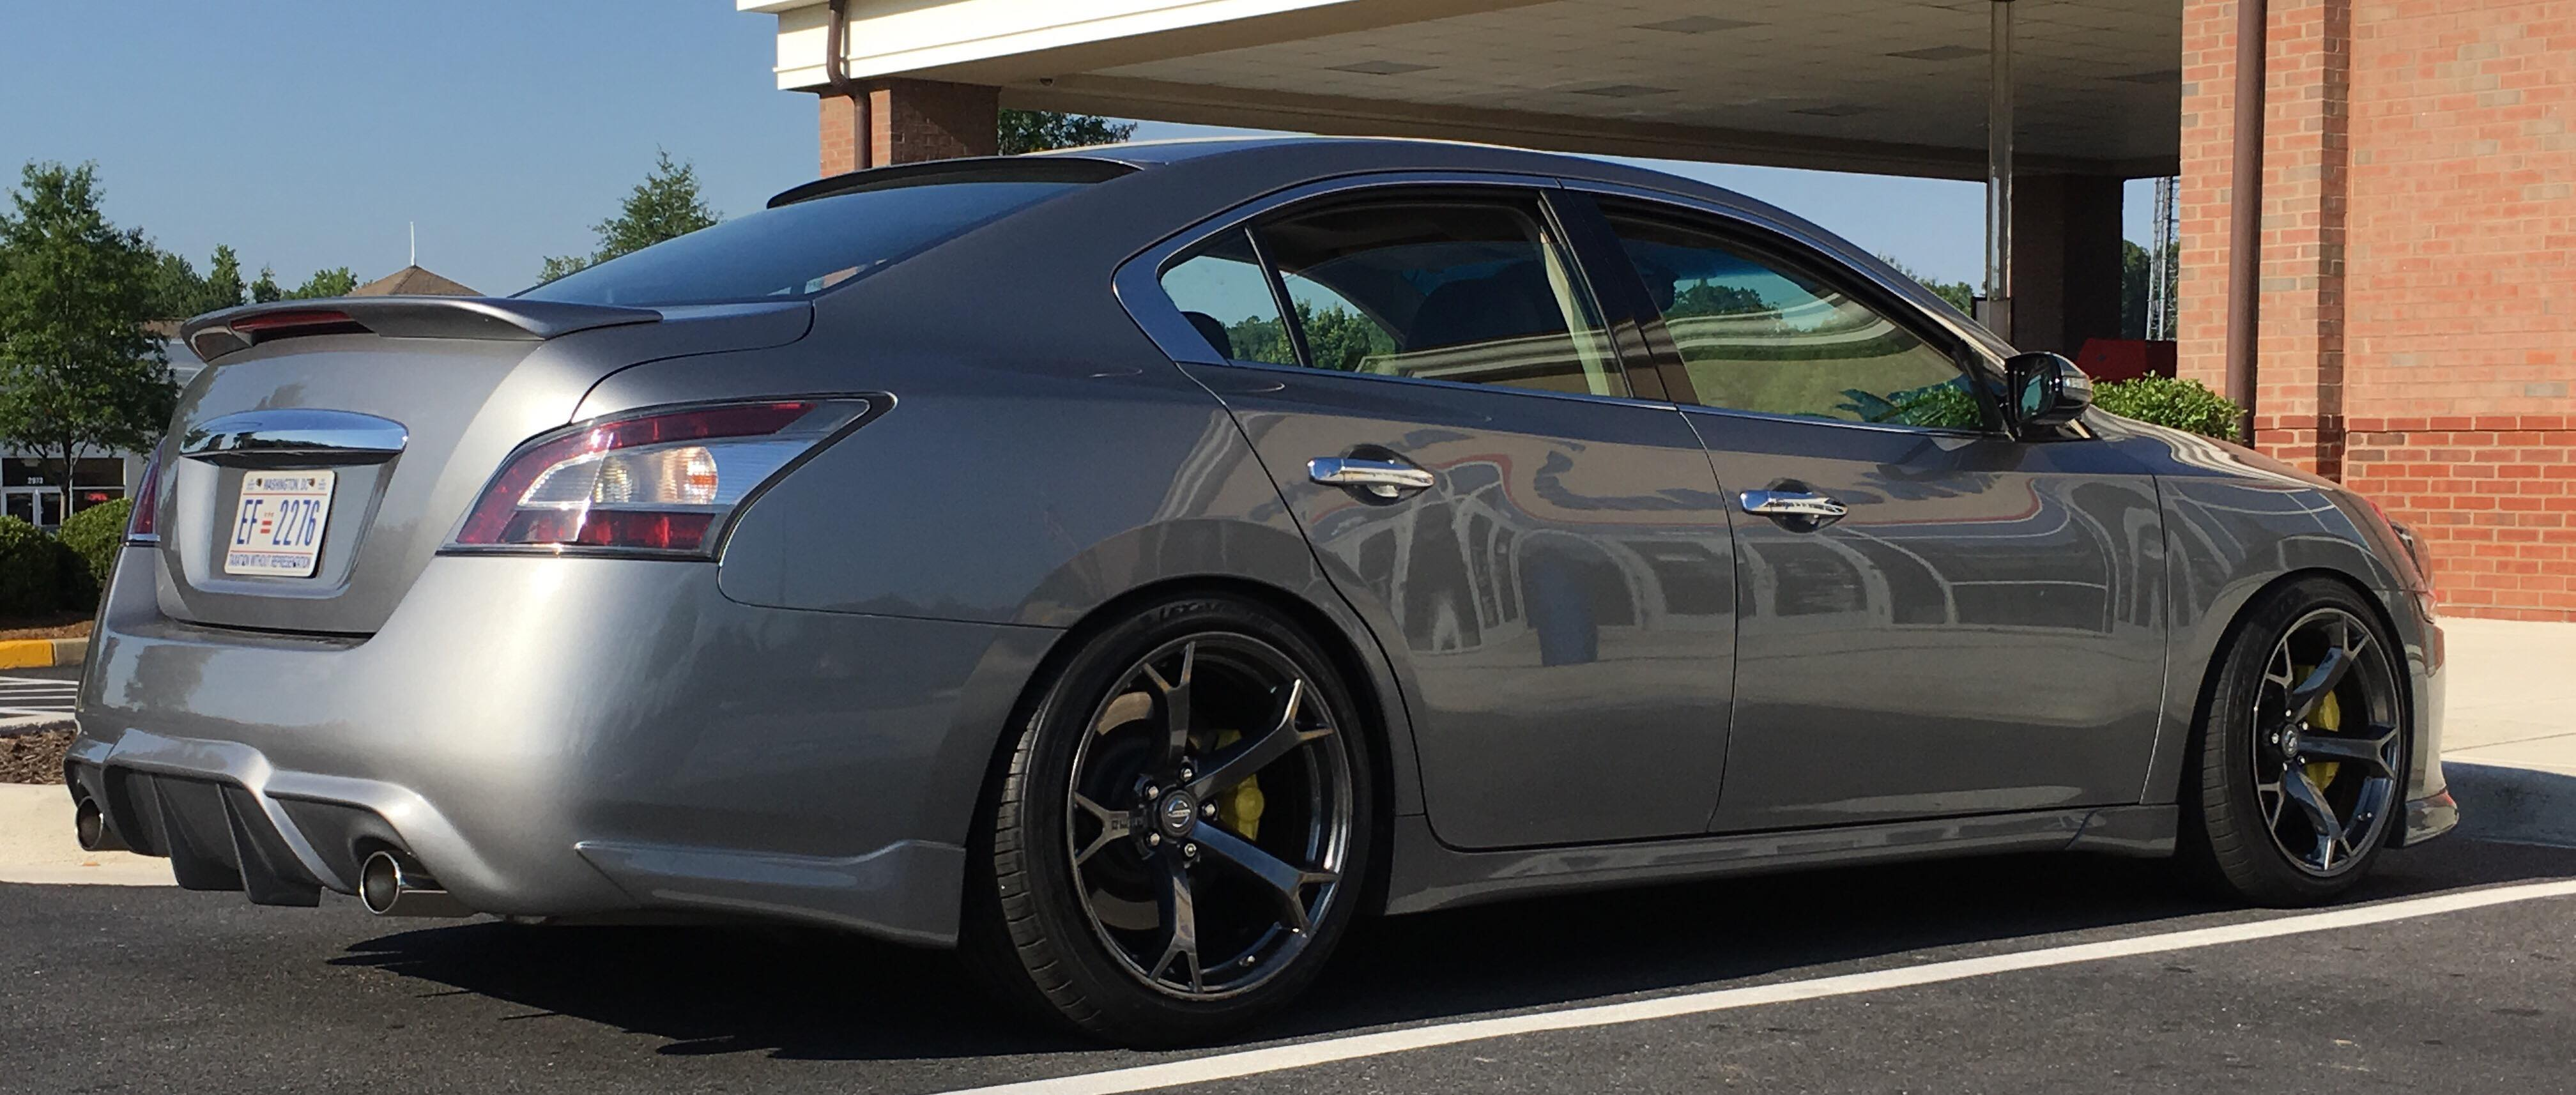 akebeono brake rebuild on 7thgen maximathe wheels 370z nismo 19×10 5 on 255 40 19\u0027s square set up